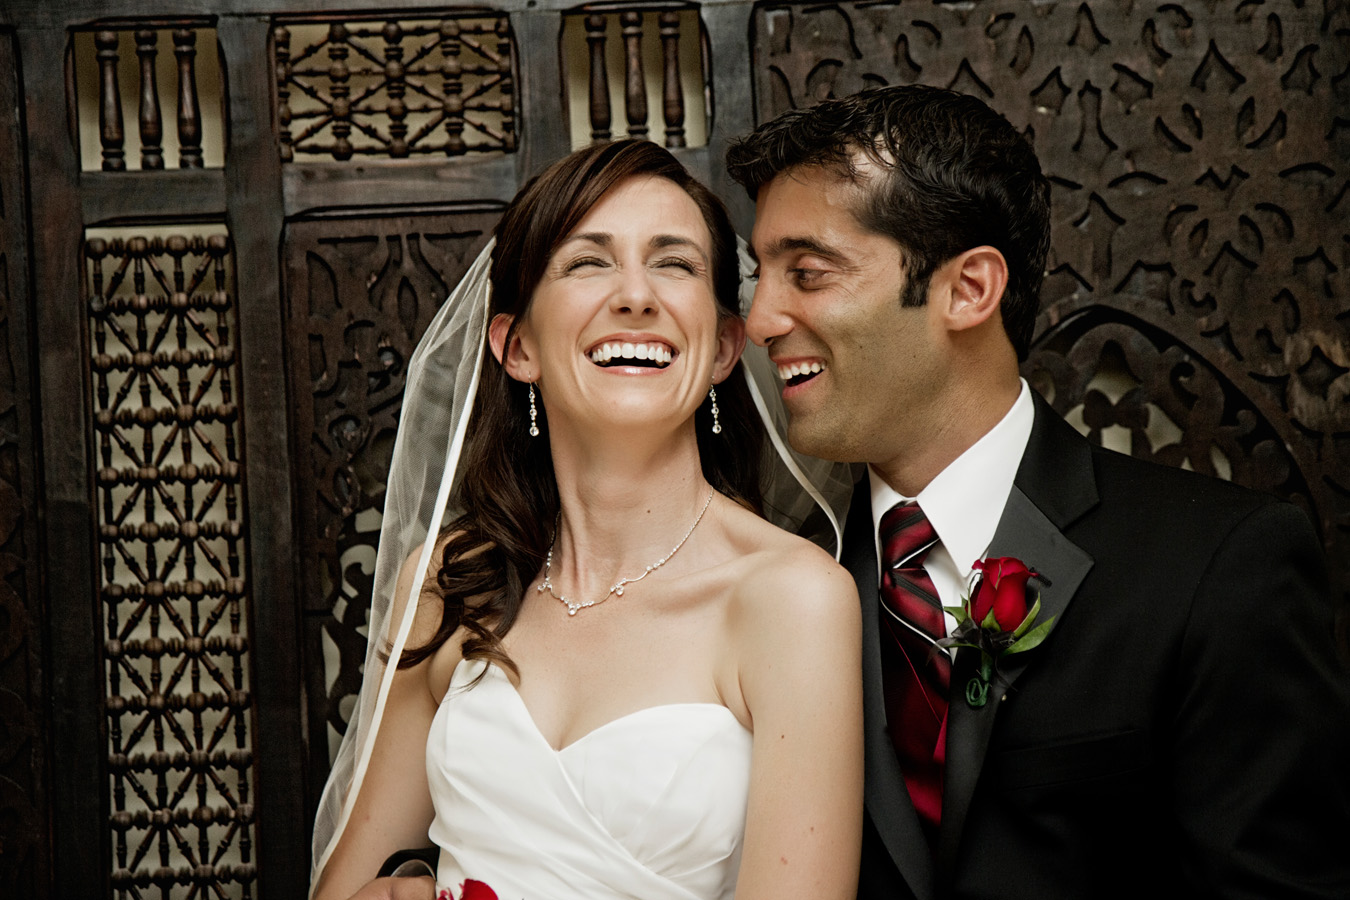 Bride & Groom Laughing - Montelucia